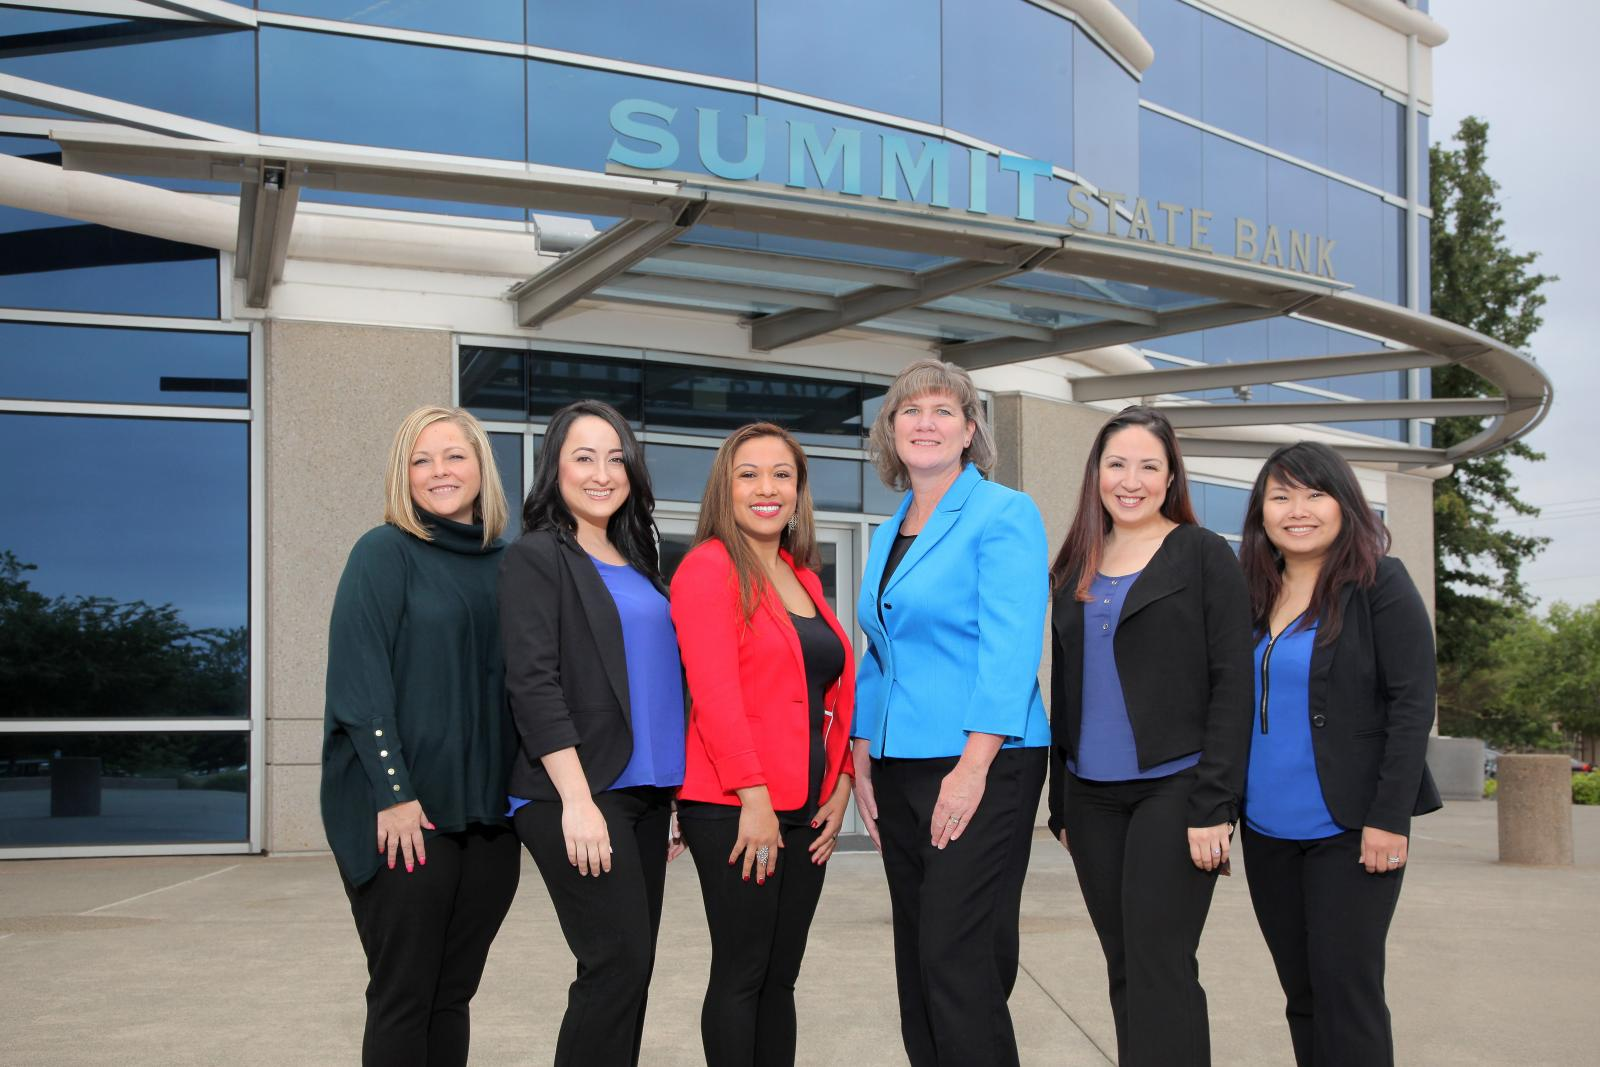 Summit State Bank Branches